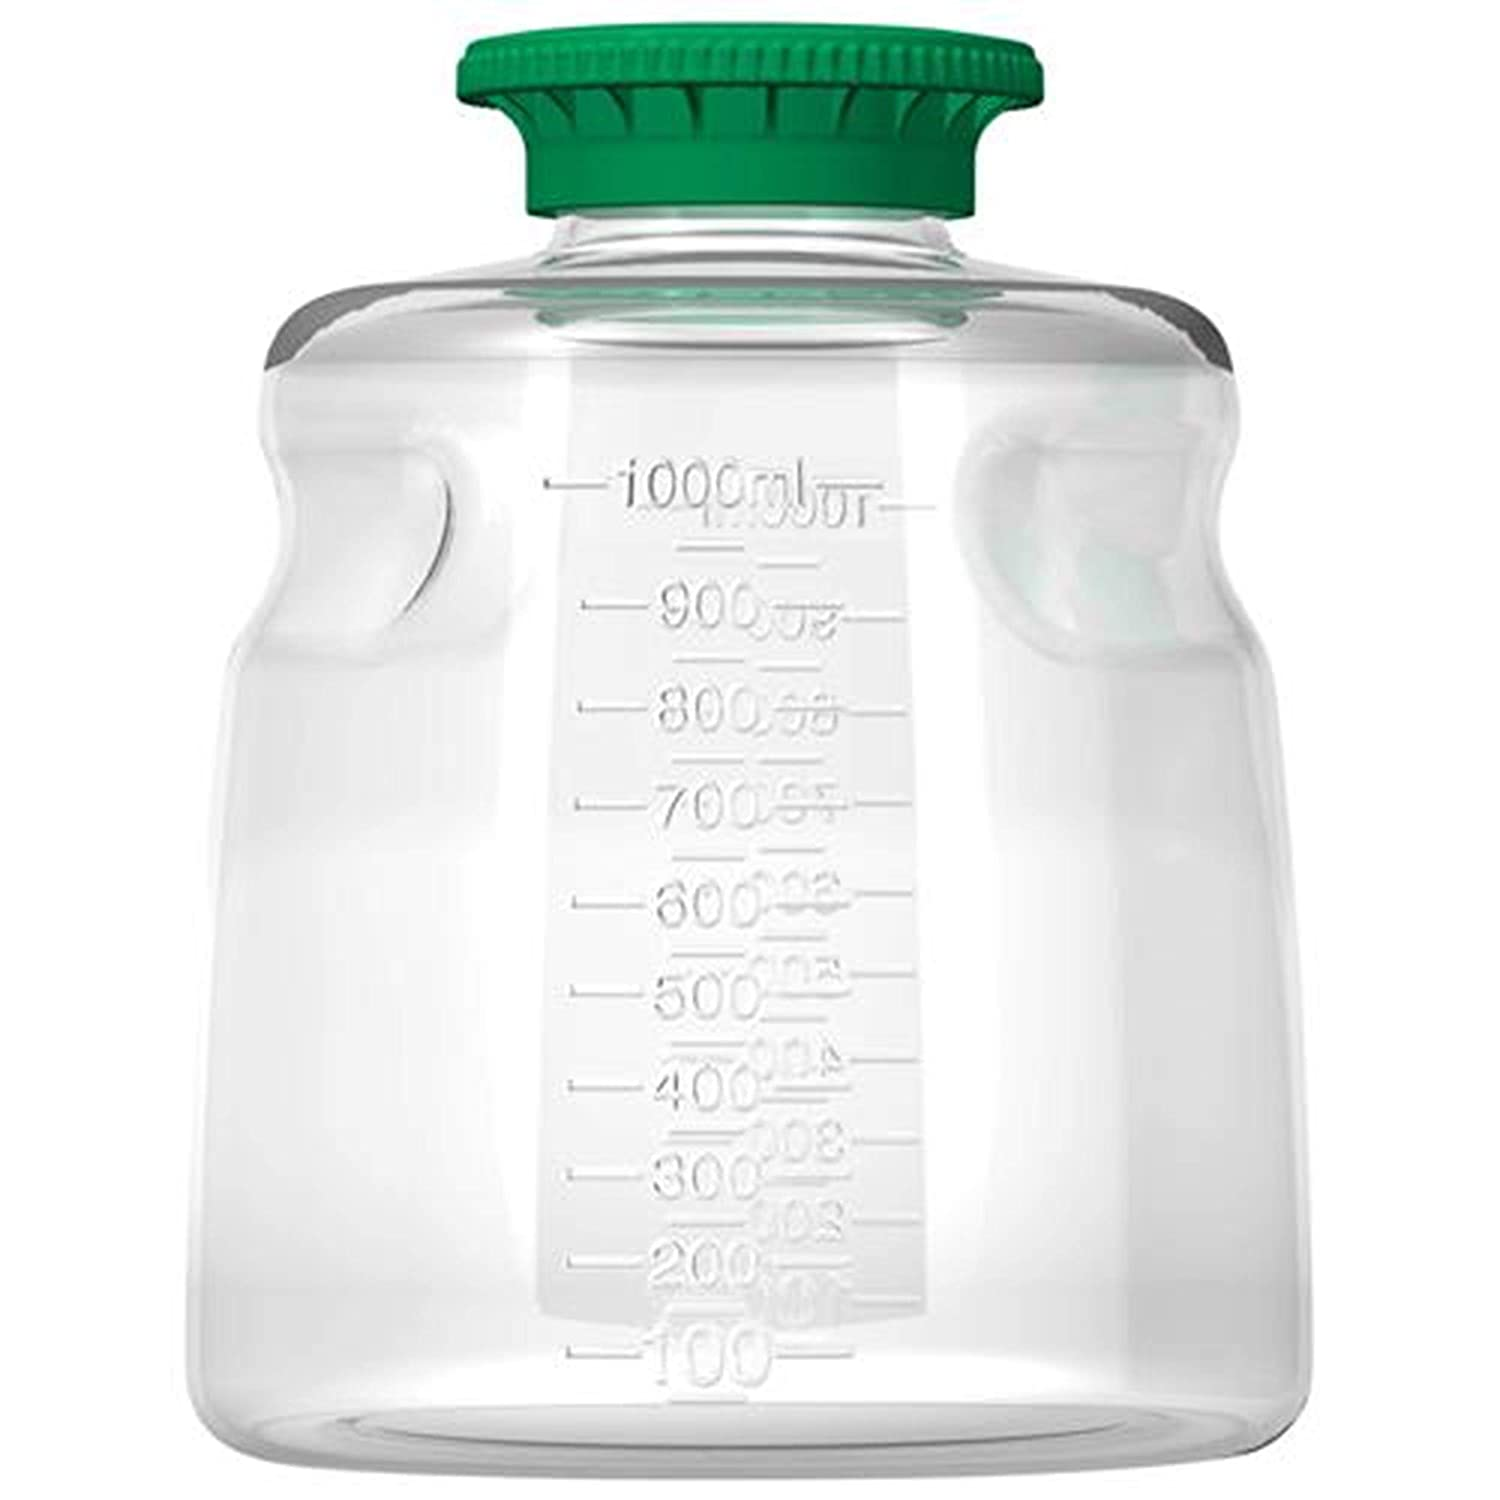 Autofil PETG Non-Sterile Disposable Media Bottle with Polypropylene Cap, 1000ml Volume (Pack of 24)